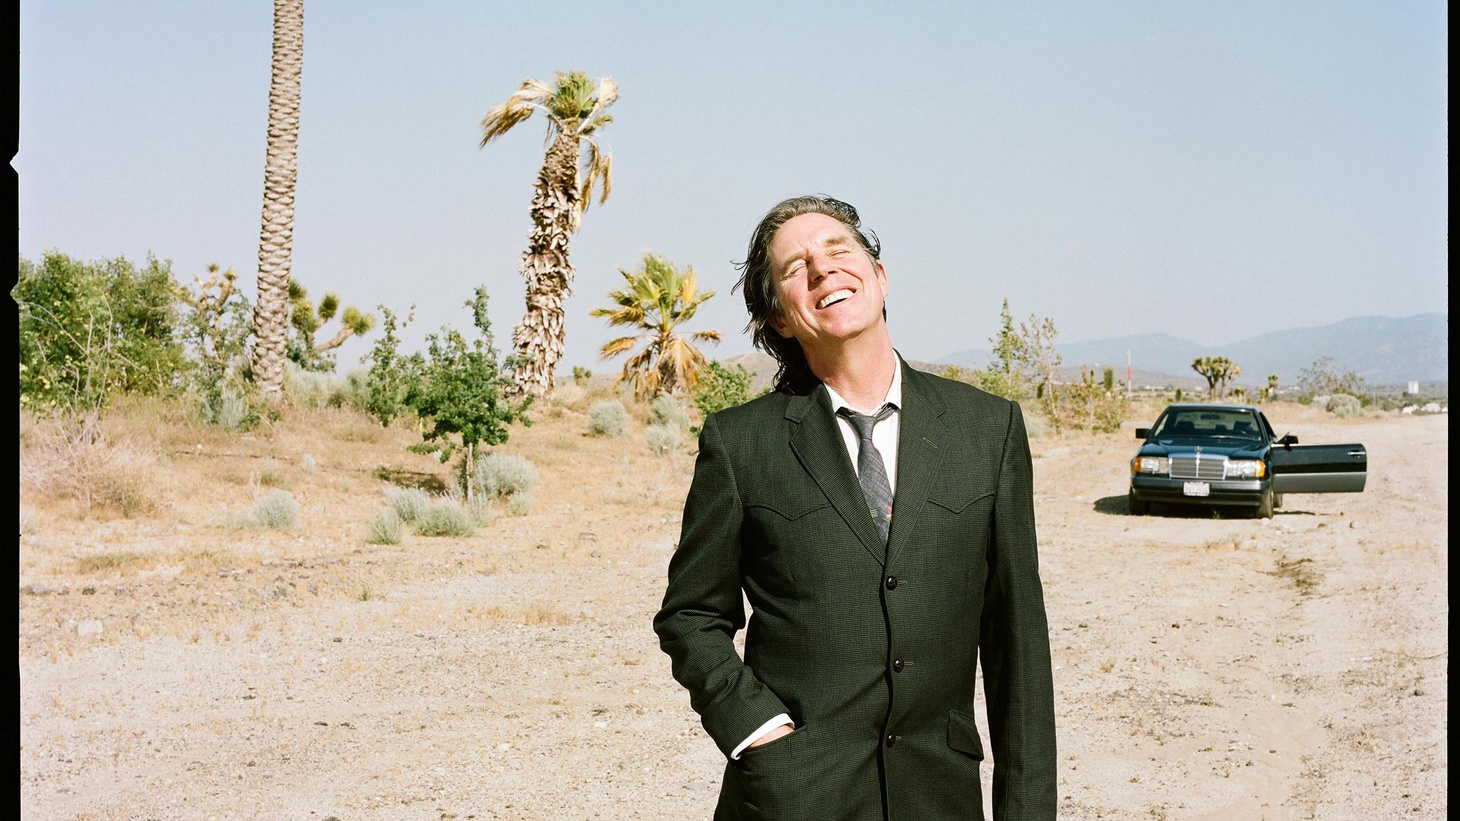 Punk pioneer and founding member of X John Doe has been writing lovelorn songs for years but on his eighth album he resolves his dilemma and finds a happier ending...